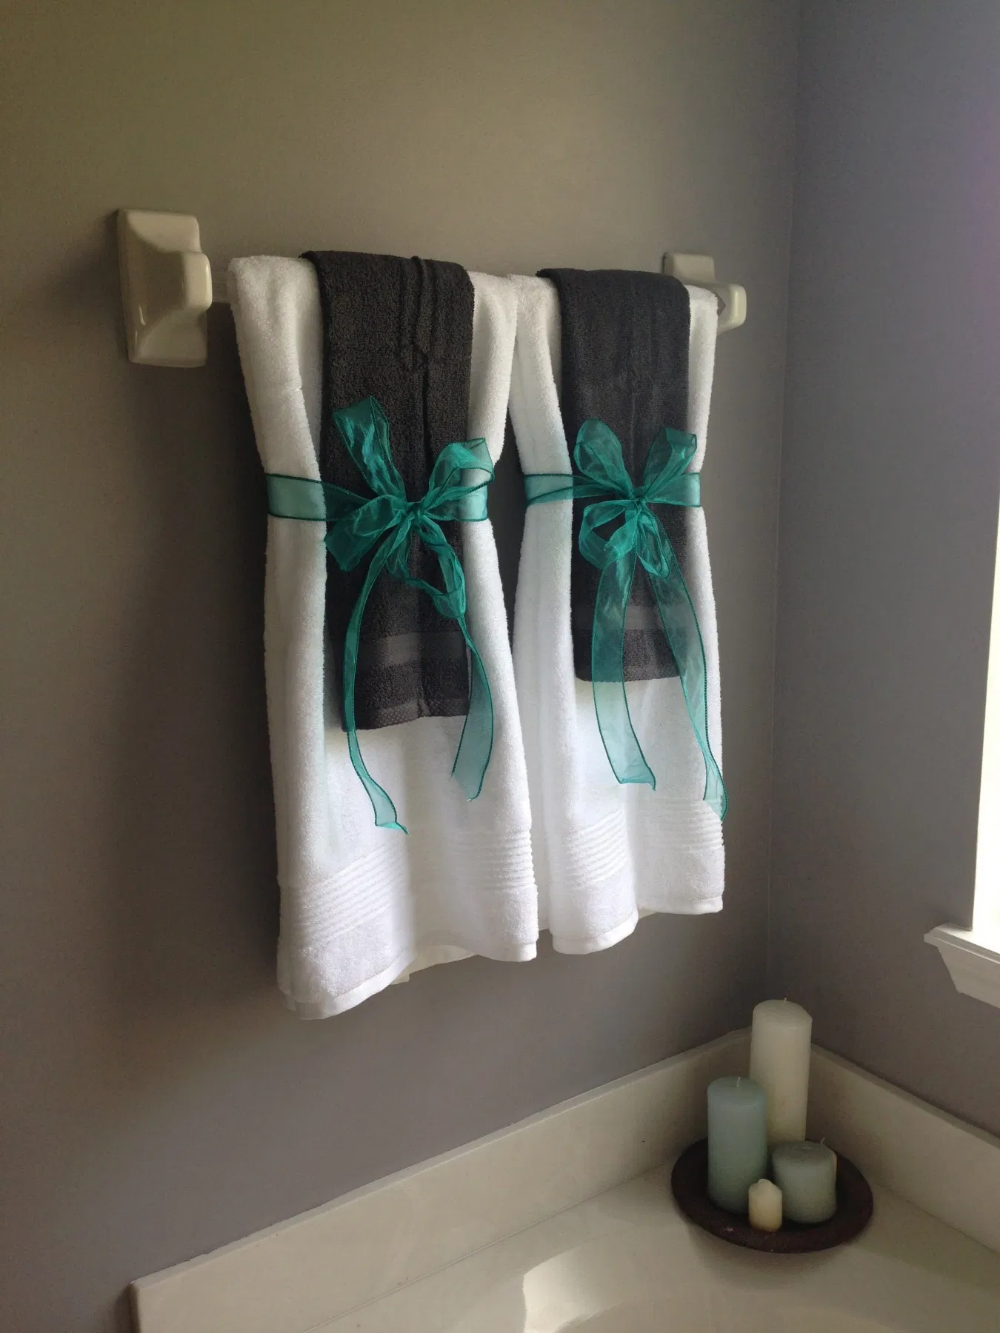 36 Teal And Coral Bathroom Decor Ideas With Images Turquoise